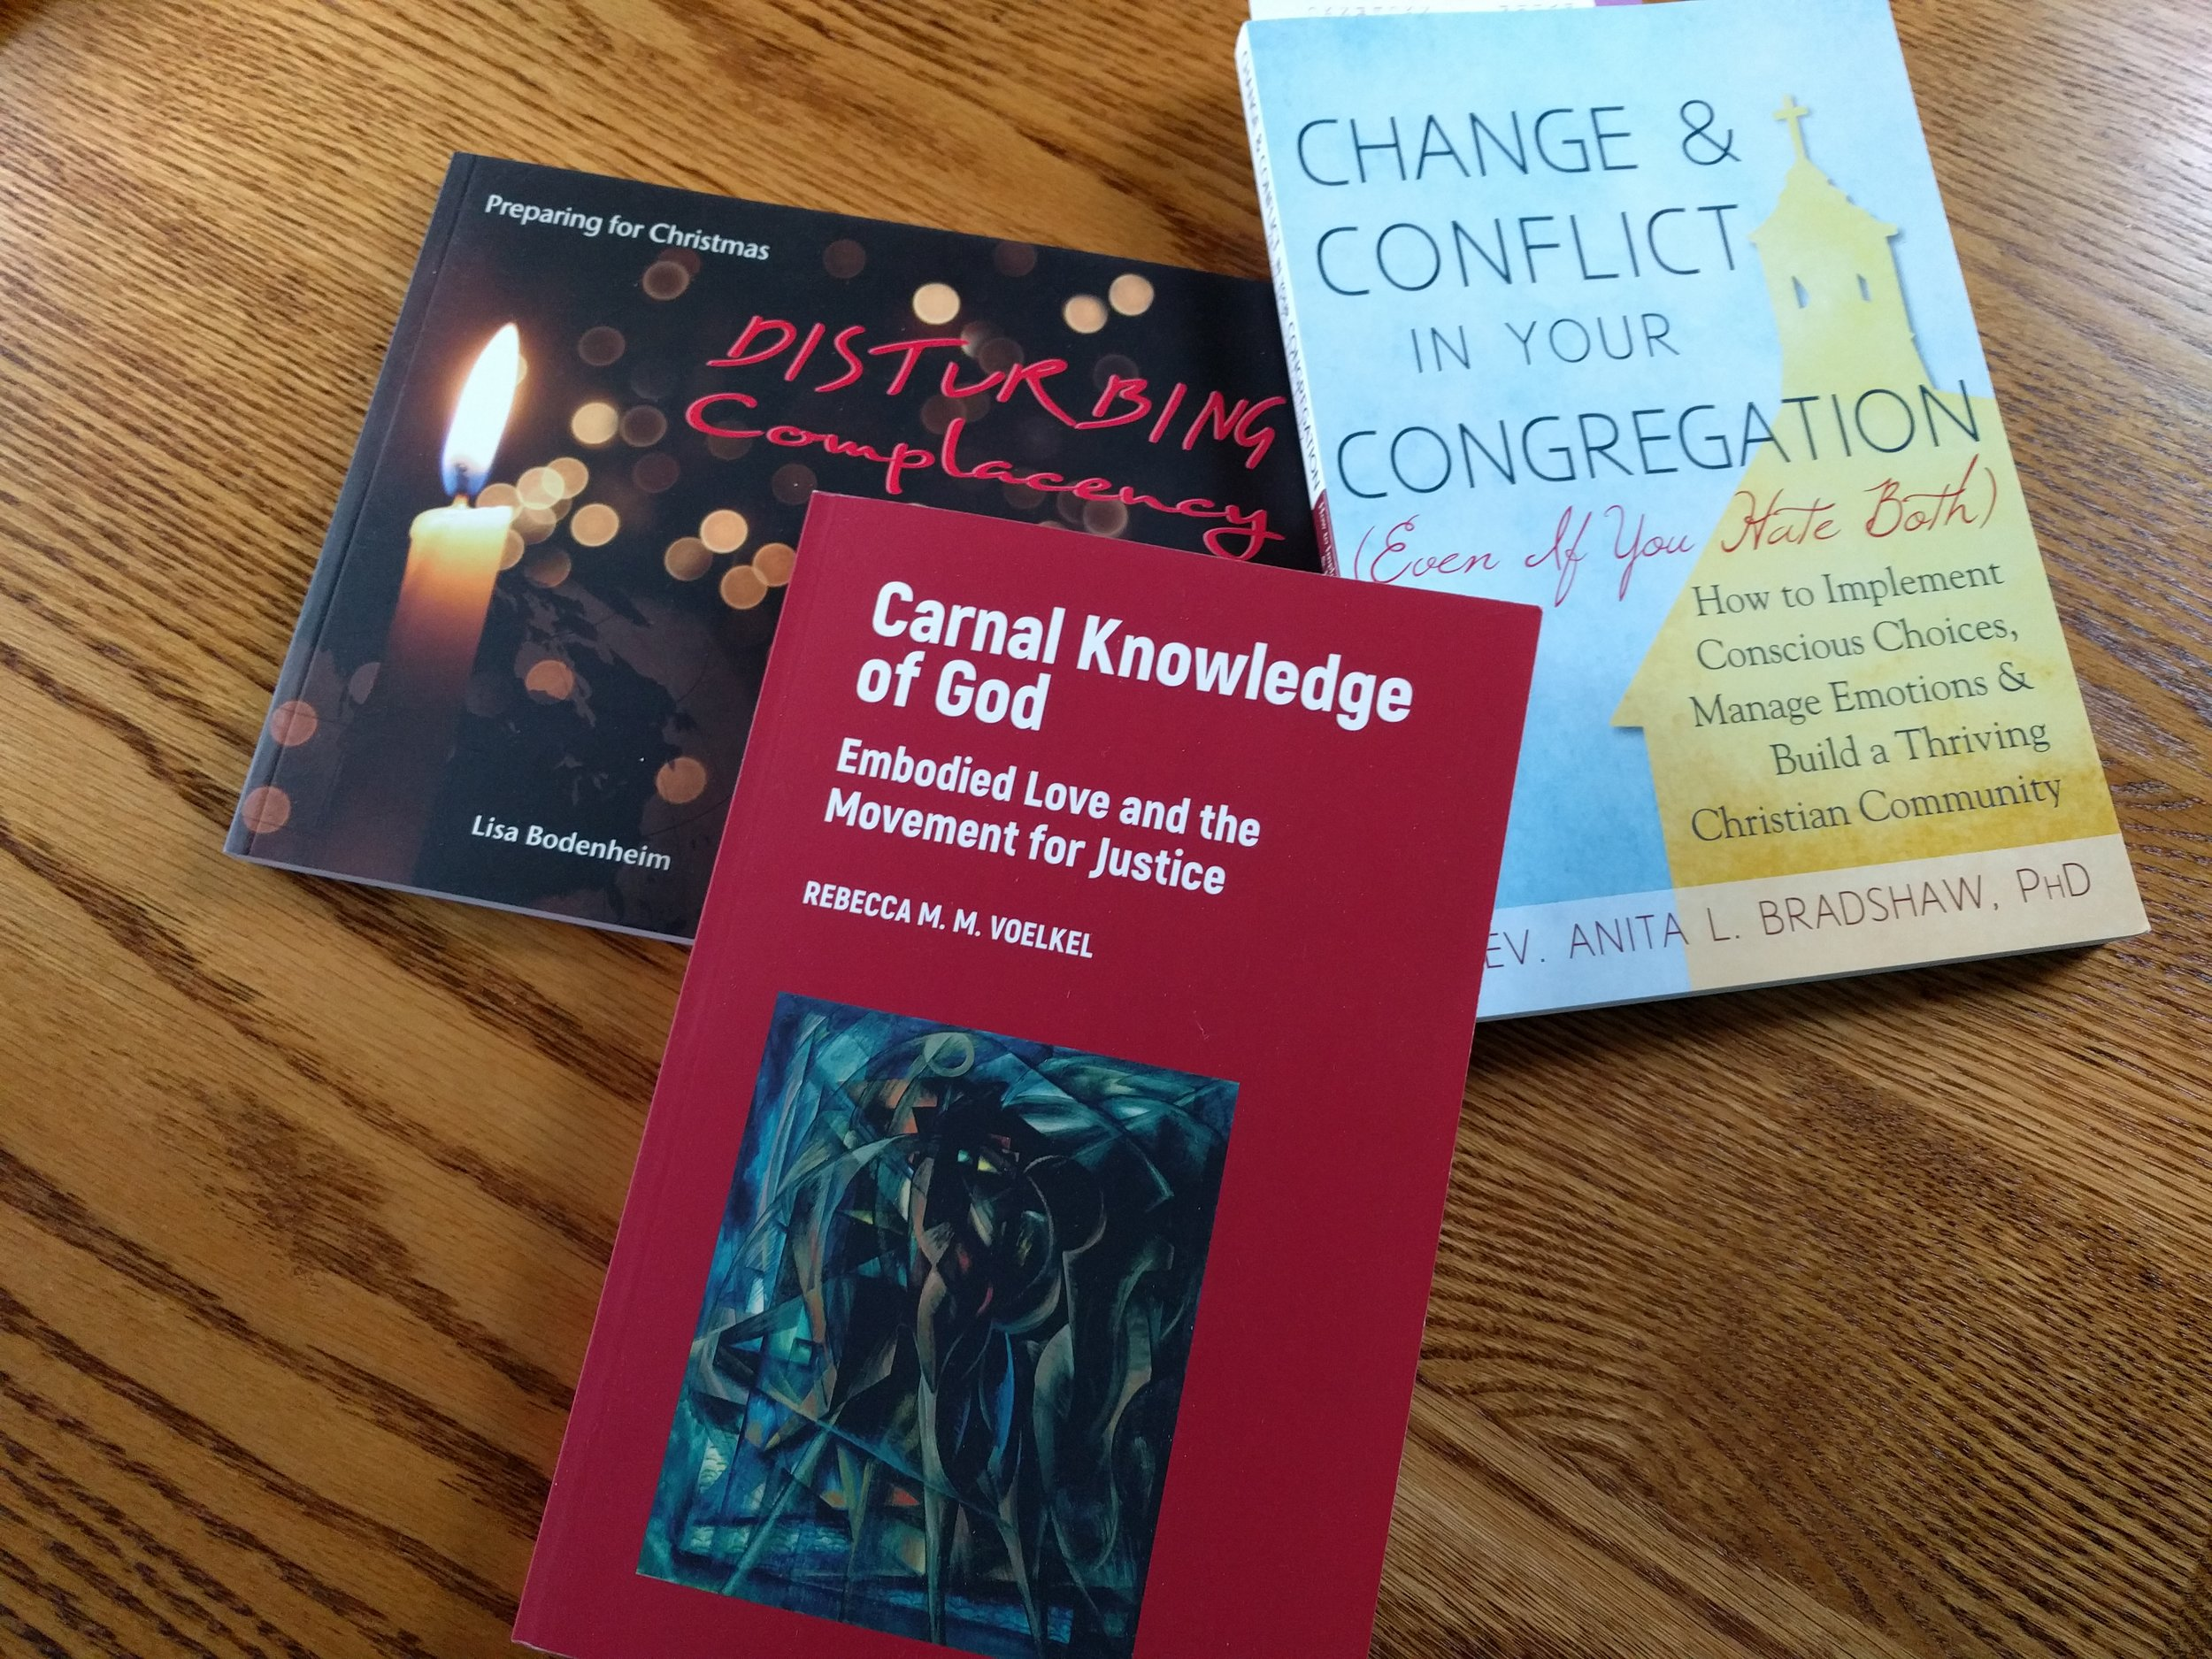 Change and Conflict in Your Congregation (Even if You Hate Both)  by Rev. Dr. Anita L. Bradshaw,  Carnal Knowledge of God: Embodied Love and the Movement for Justice  by Rev. Dr. Rebecca M.M. Voelkel, and  Disturbing Complacency: Preparing for Christmas  by Rev. Lisa Bodenheim.